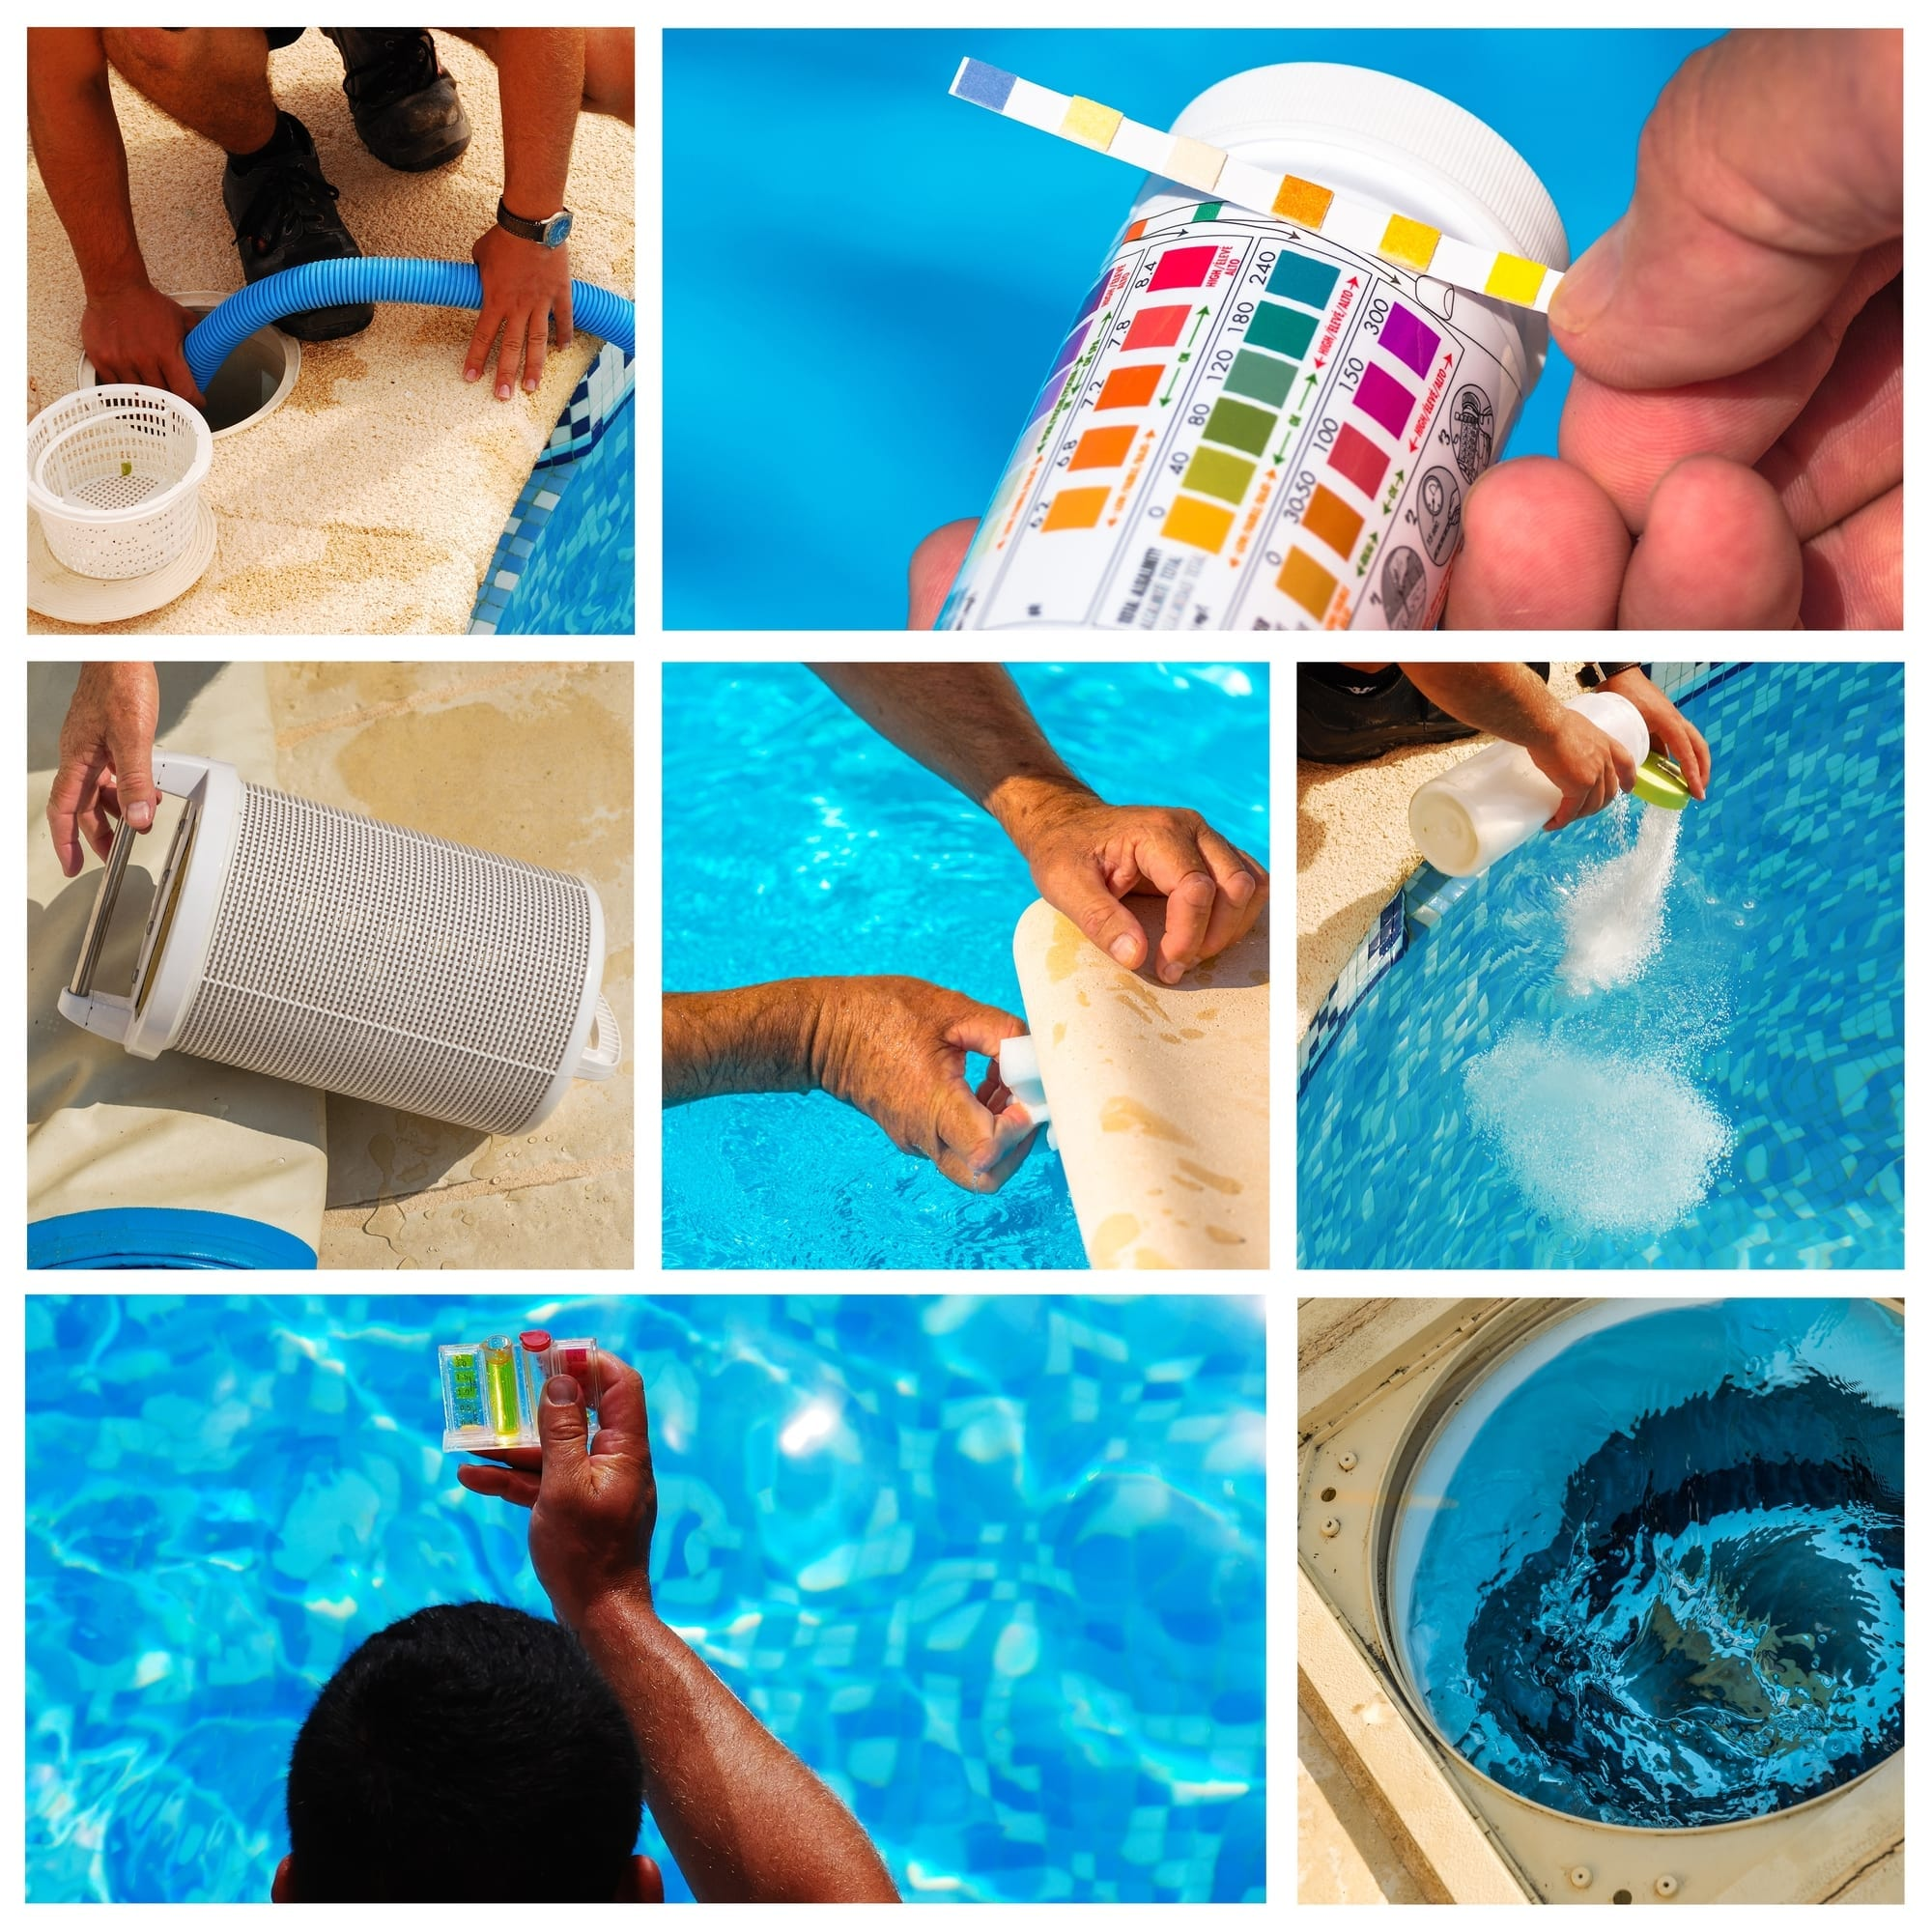 Collage of steps to clean a pool